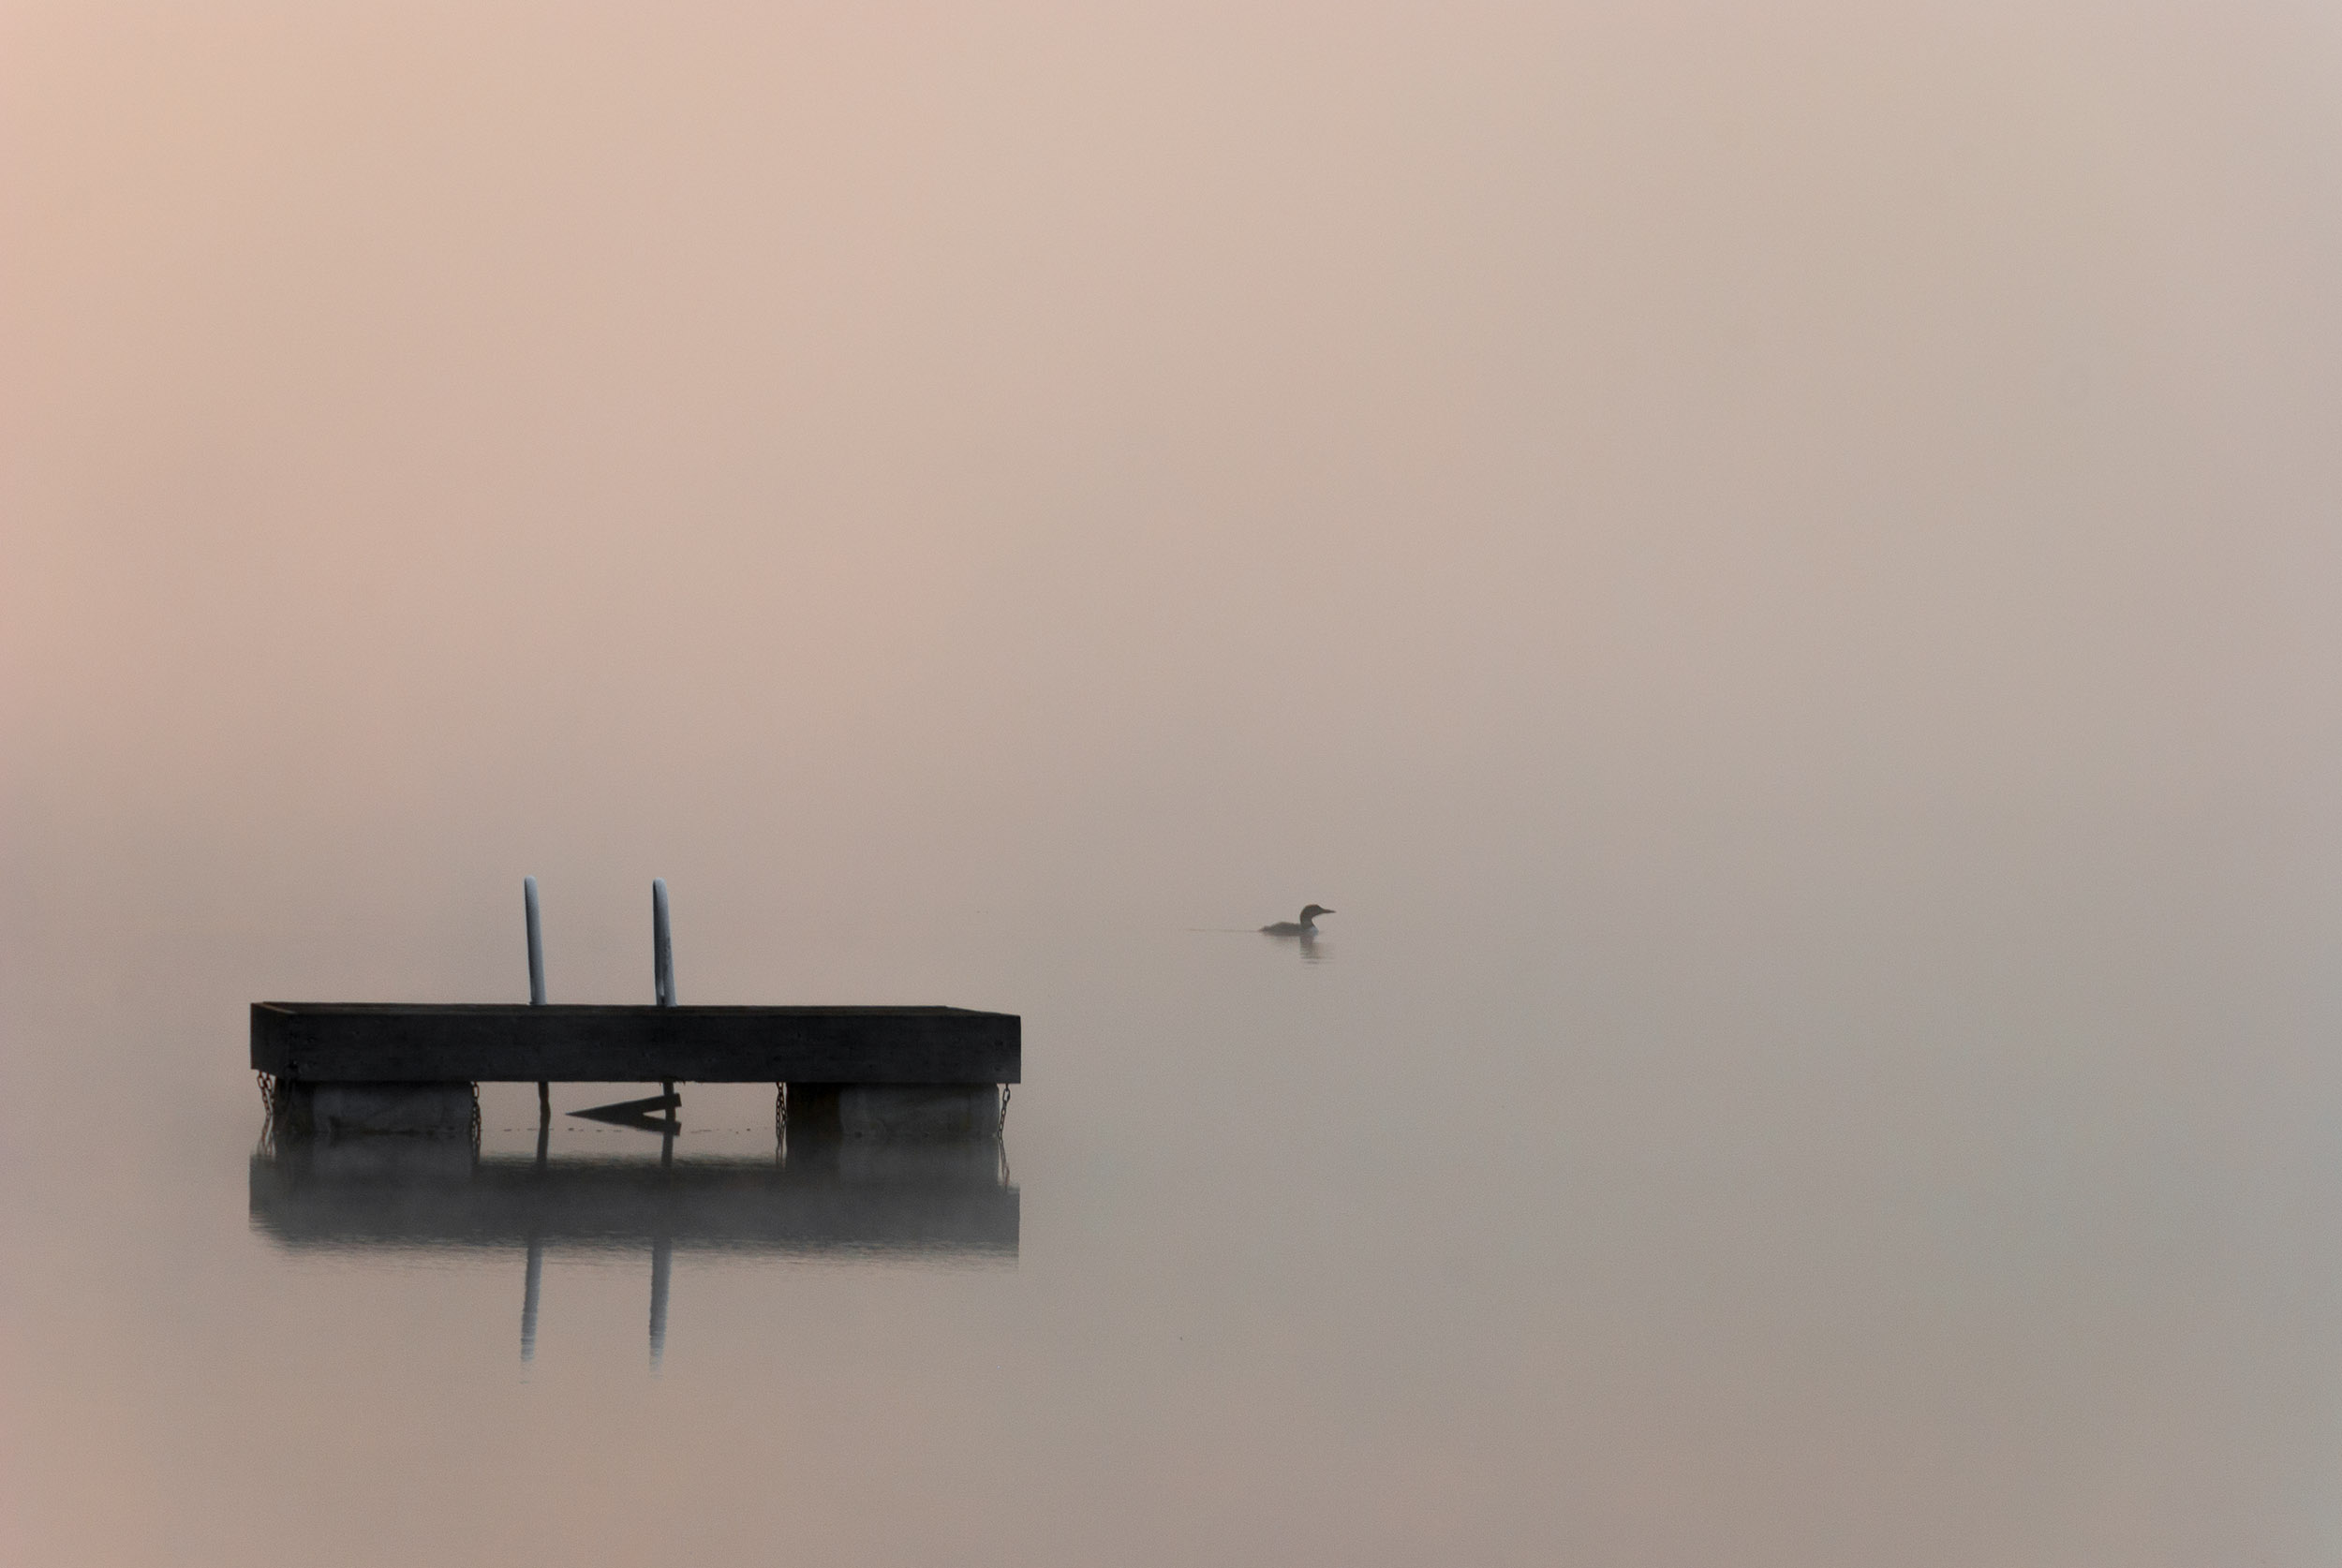 A solitary loon on the water near Algonquin Park